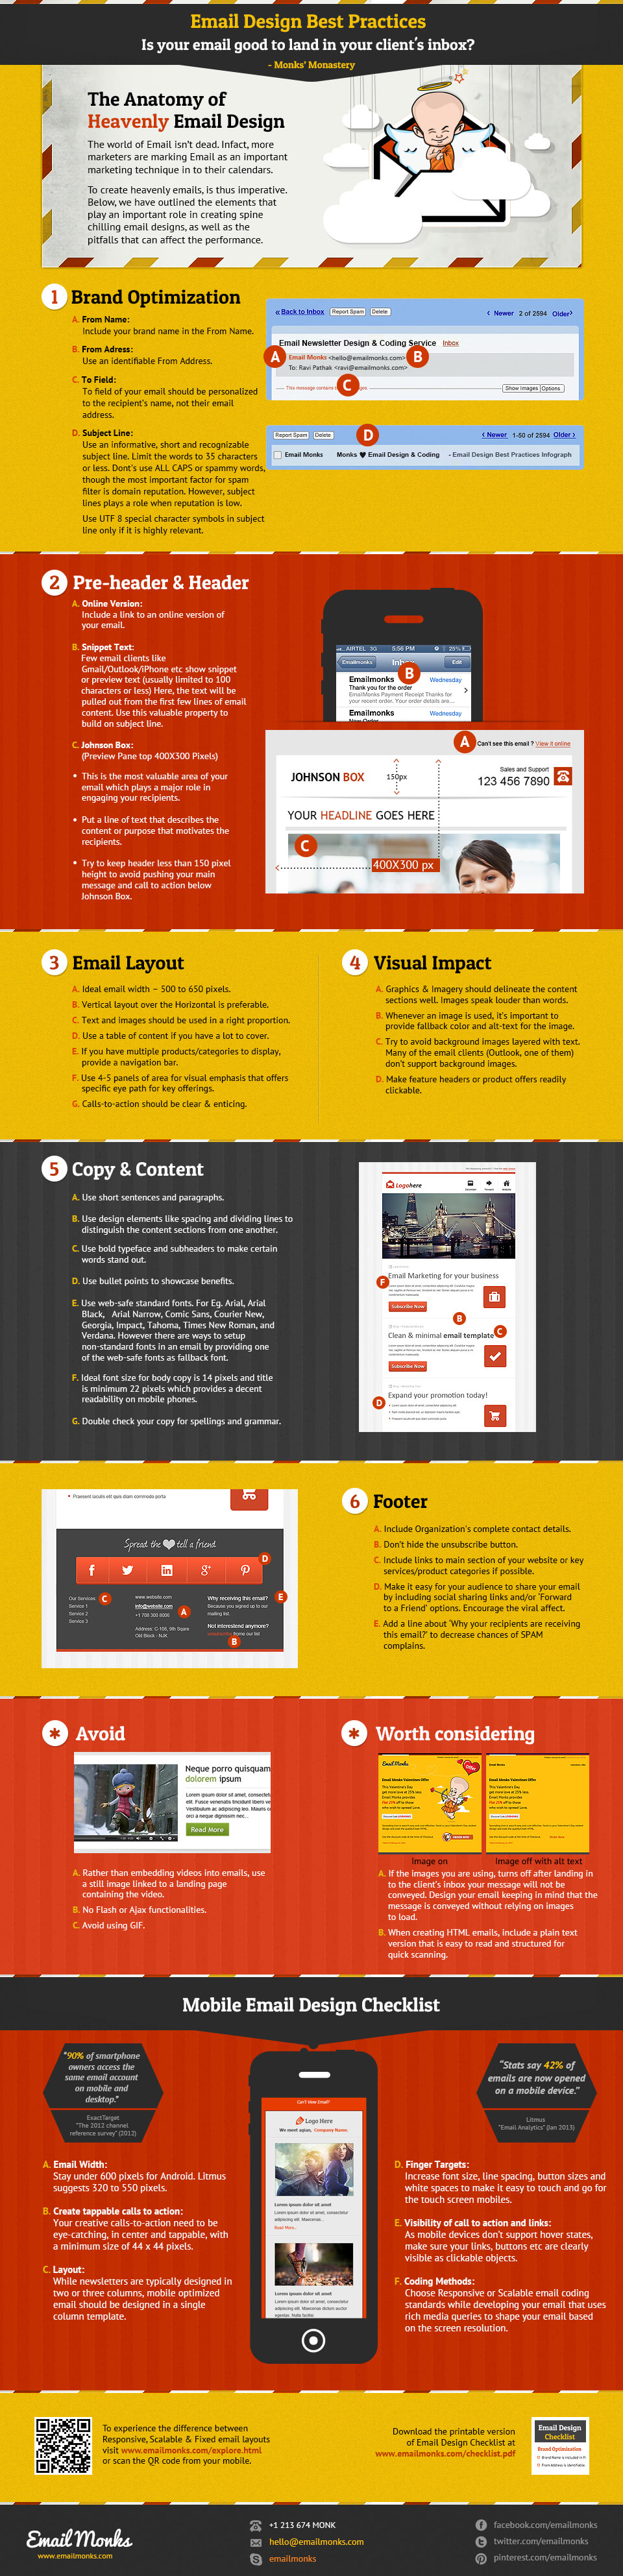 Email & Newsletter Design Best Practices Infographic